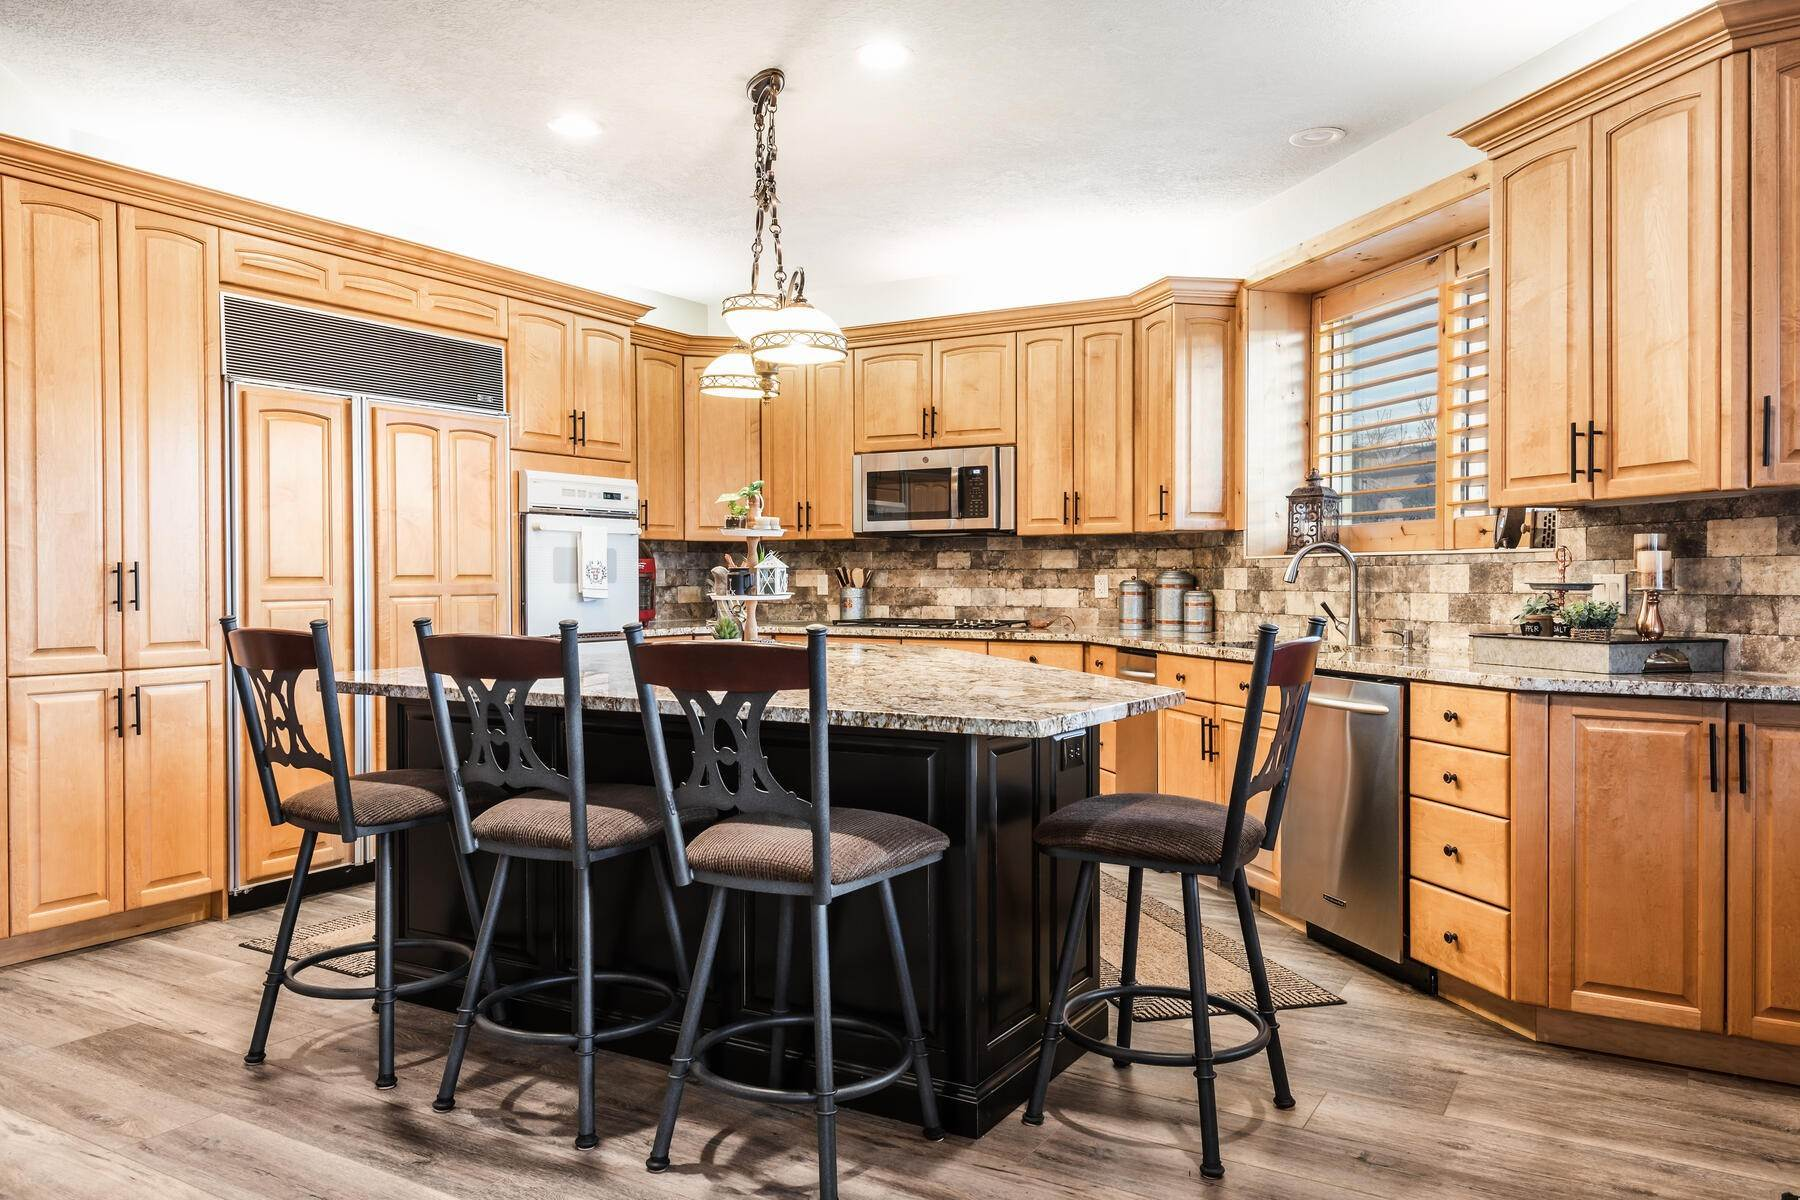 5. Single Family Homes for Sale at Beautiful 2-Story High up on Draper's East Bench 12464 S 1840 E Draper, Utah 84020 United States